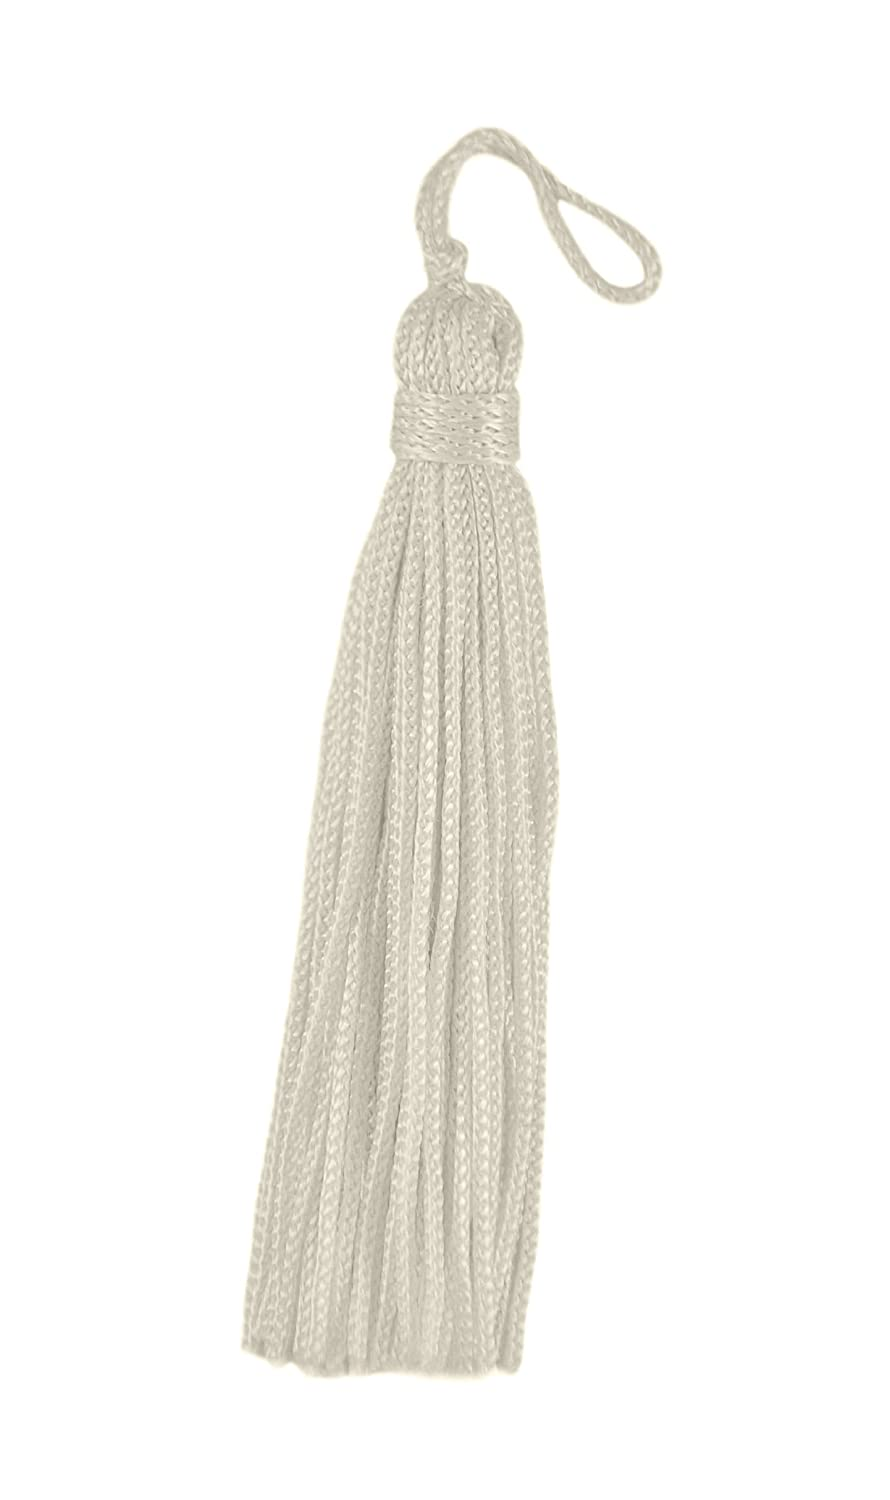 Set of 10 Ivory Chainette Tassel, 3 Inch Long 1 Inch Loop, Basic Trim Collection Style# RT03 Color: Natural - A2 DecoPro 4337038583